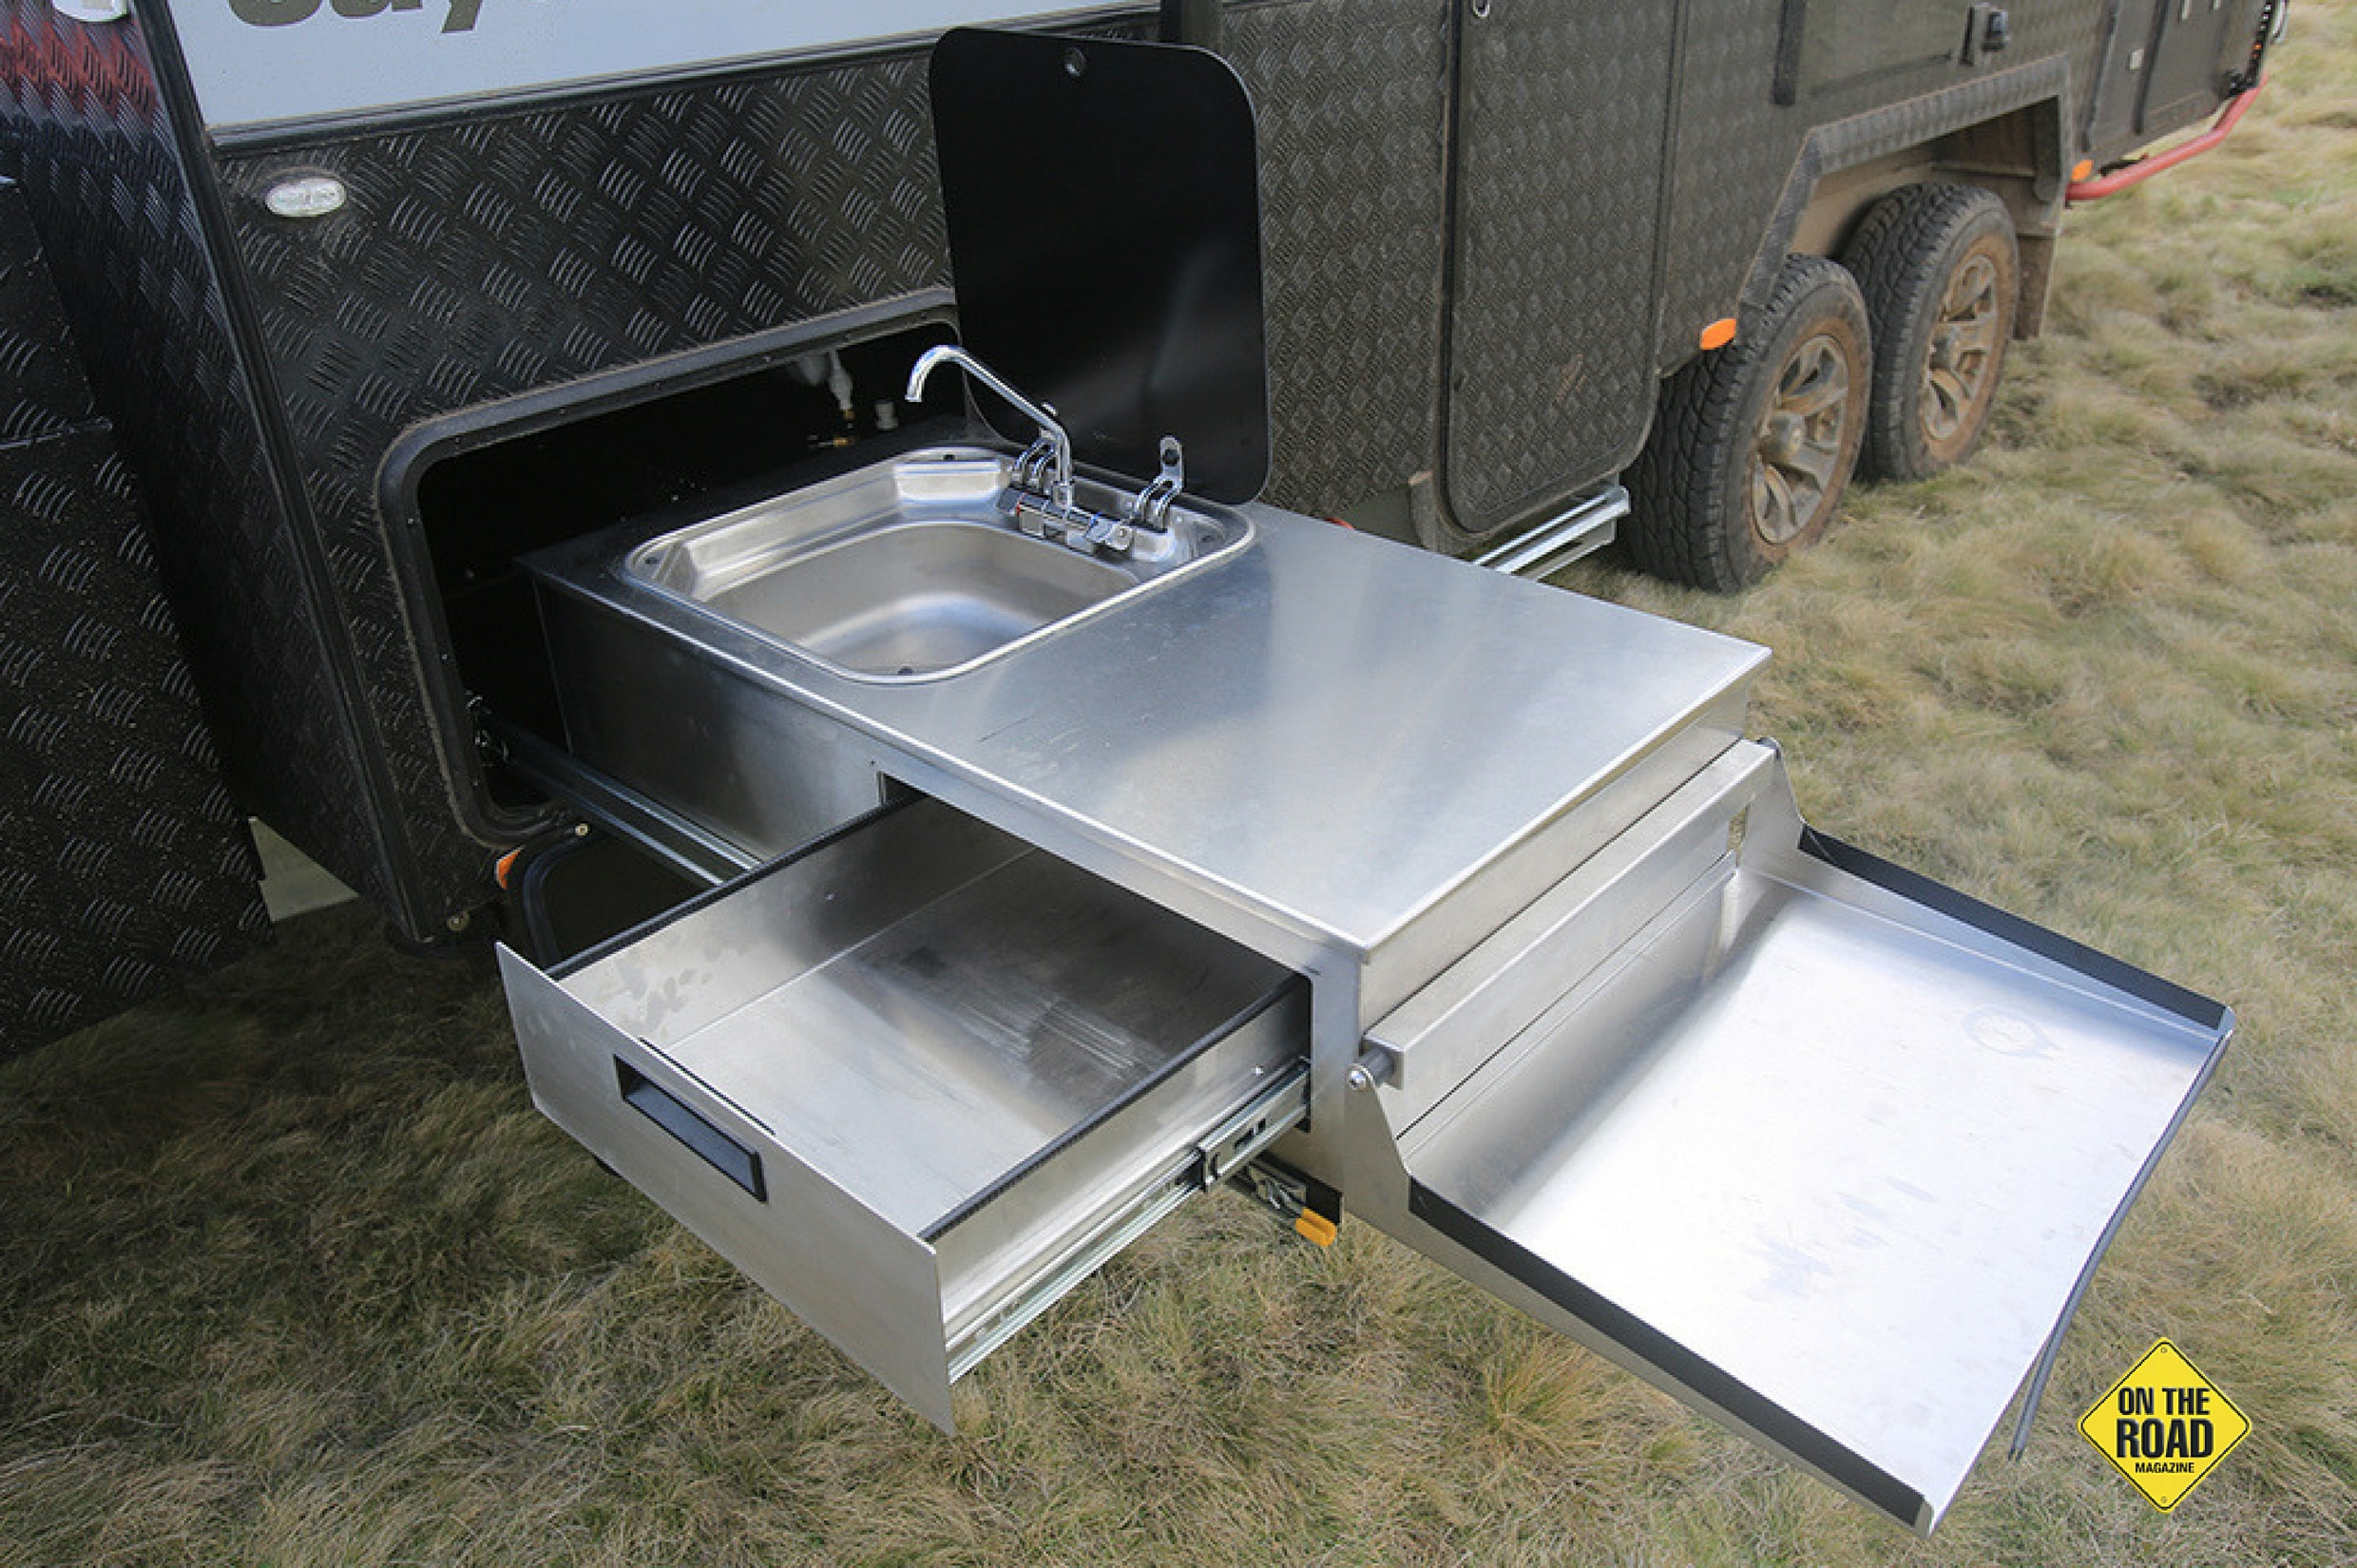 It has a pullout kitchen